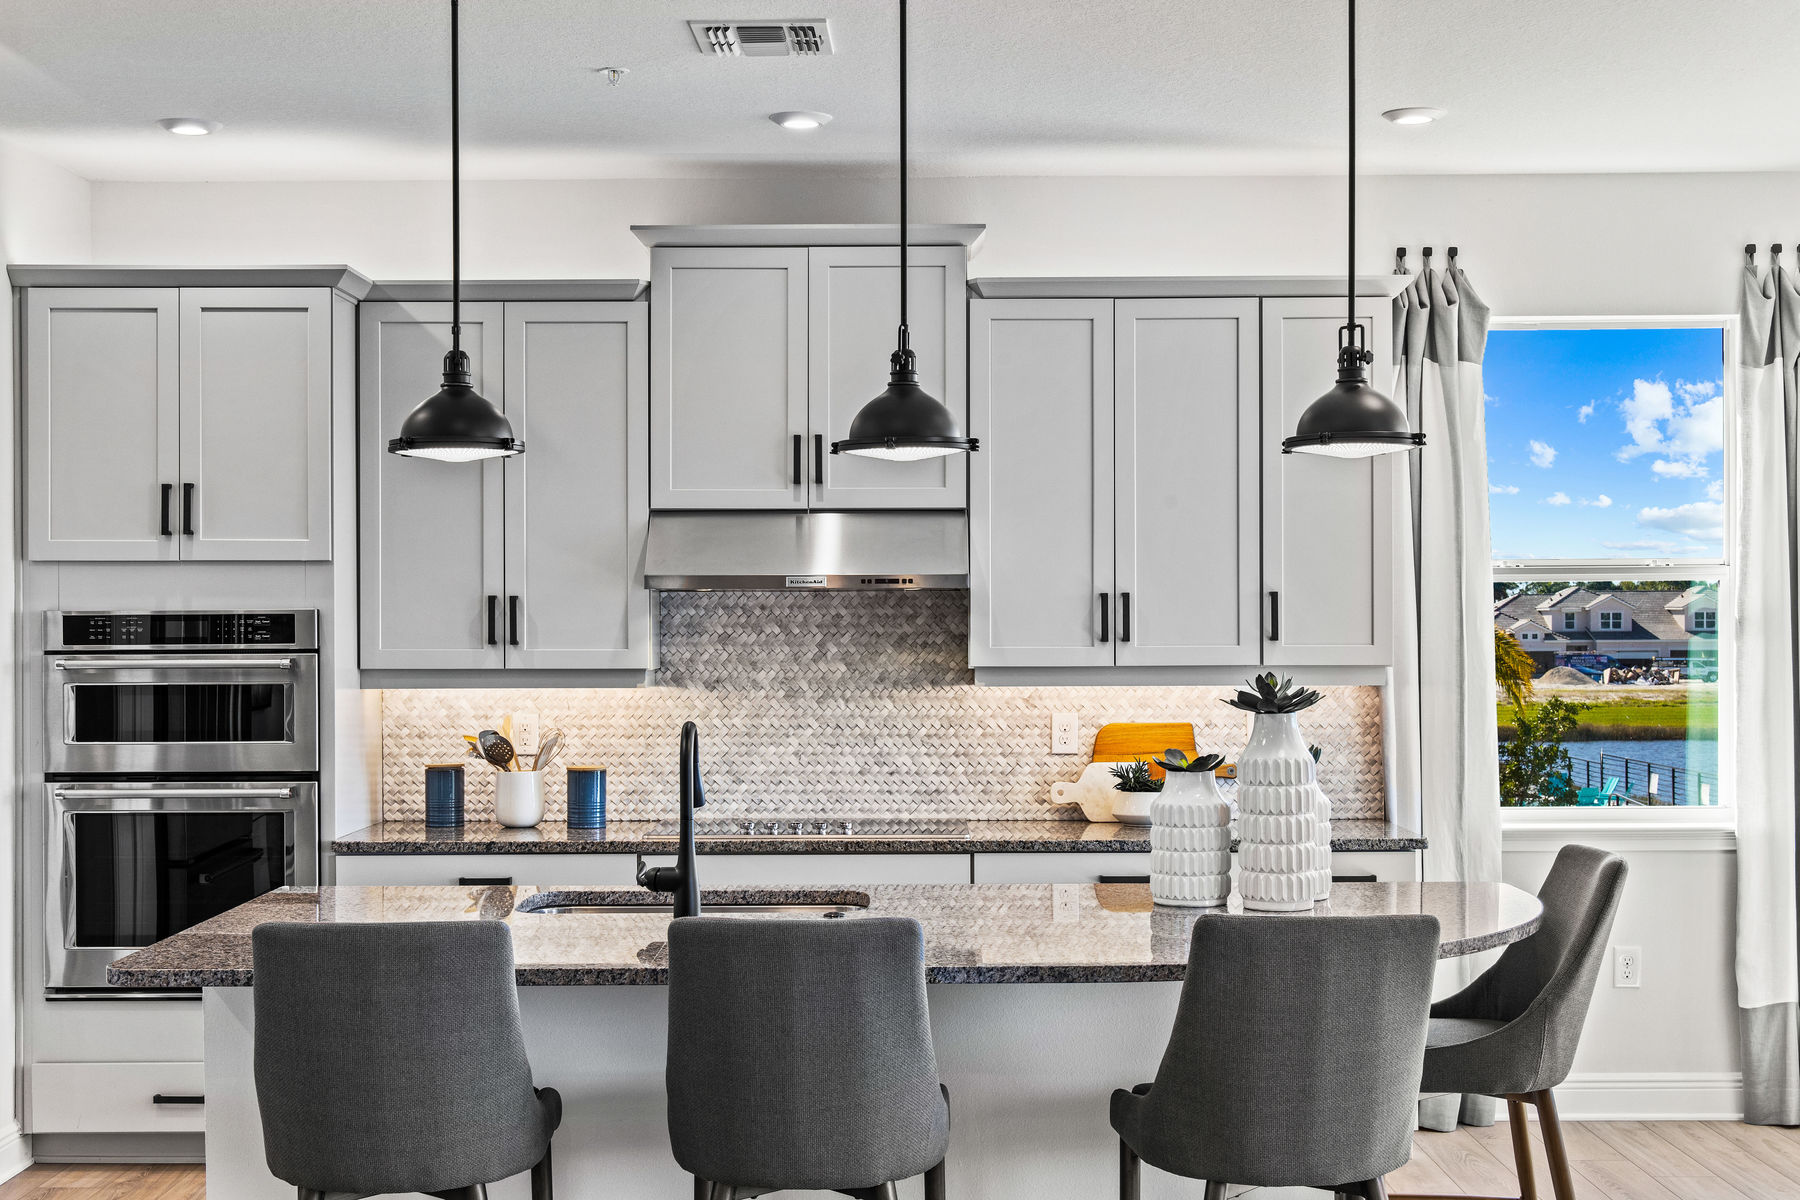 Arboretum Kitchen in Naples Florida by Mattamy Homes